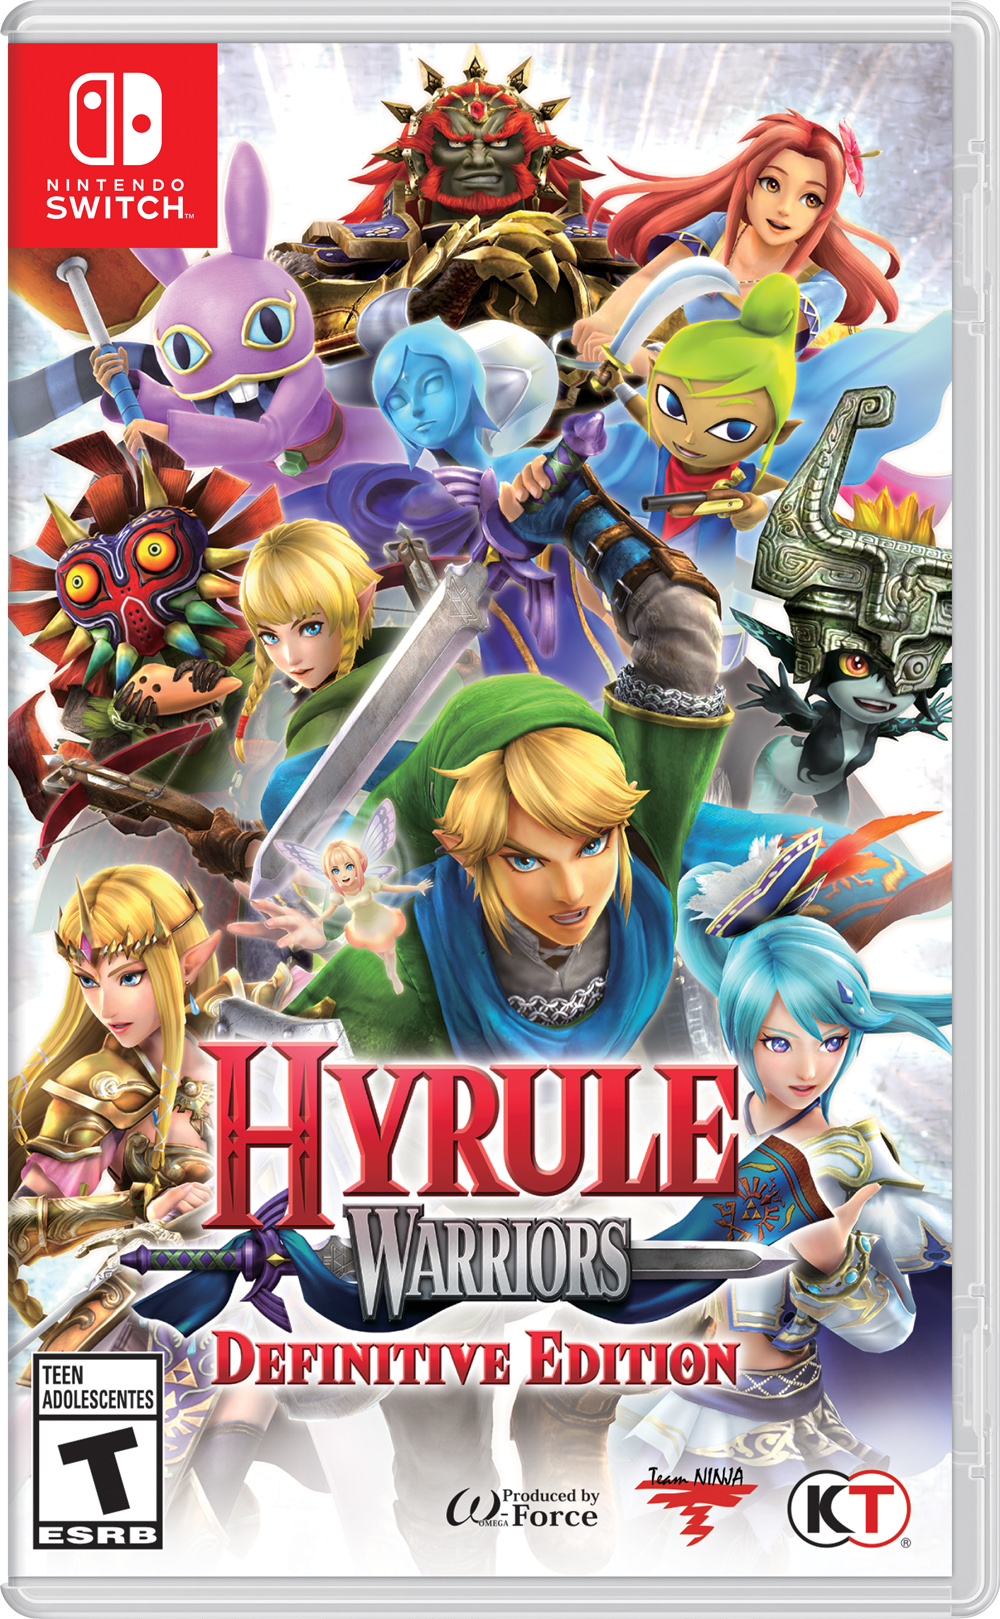 Hyrule Warriors Definitive Edition Boxart